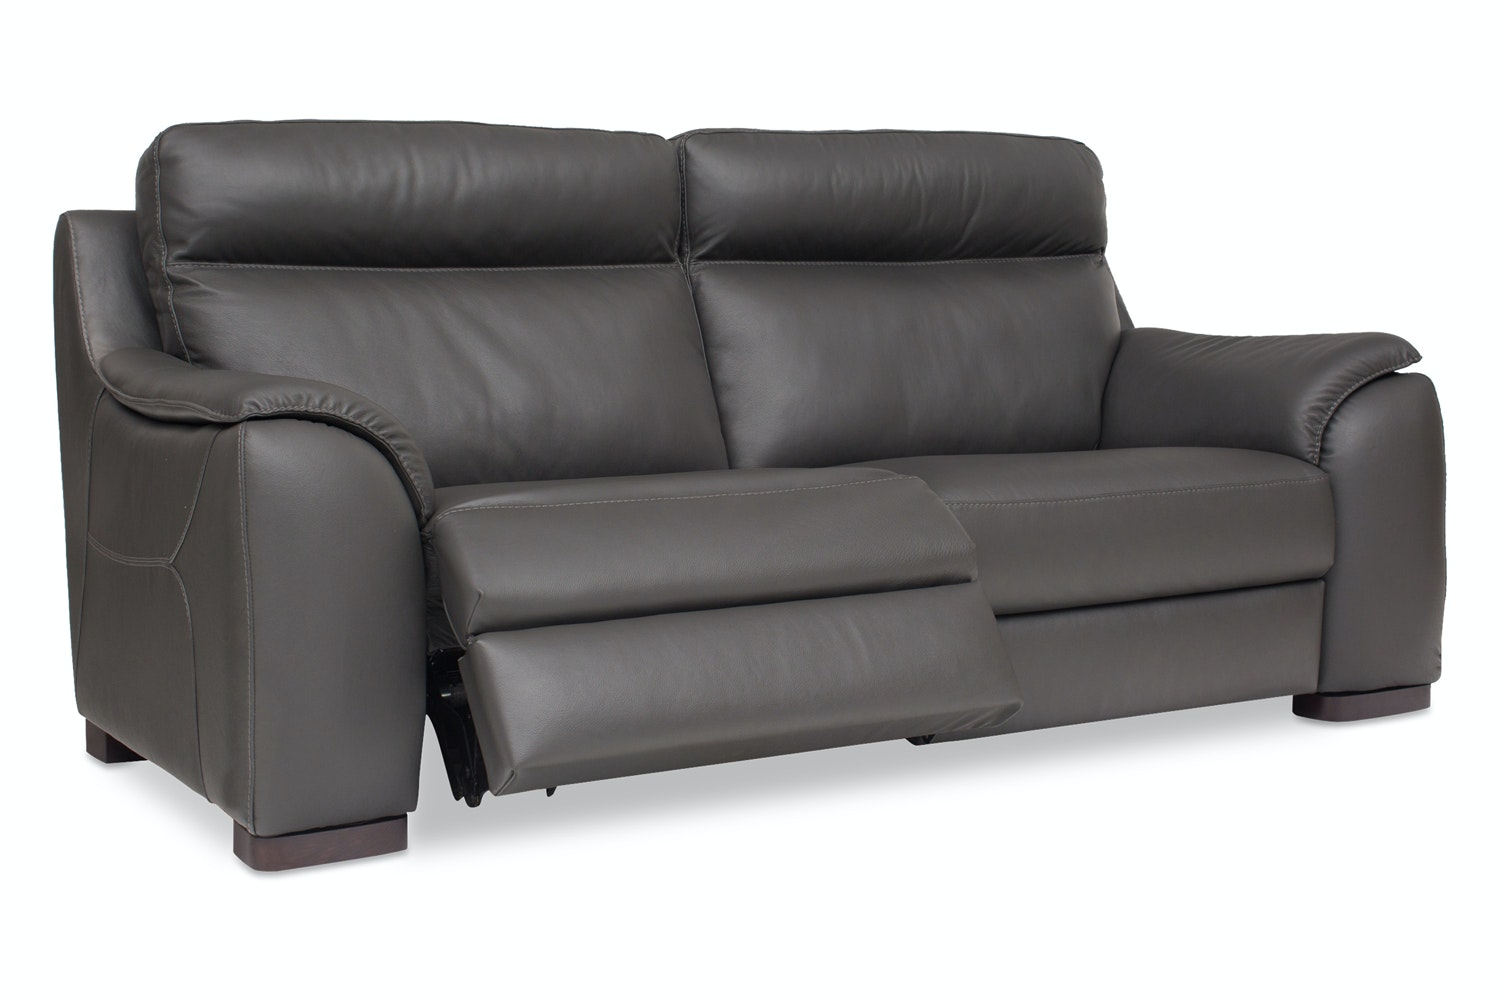 Harrods 3 Seater Electric Recliner Sofa